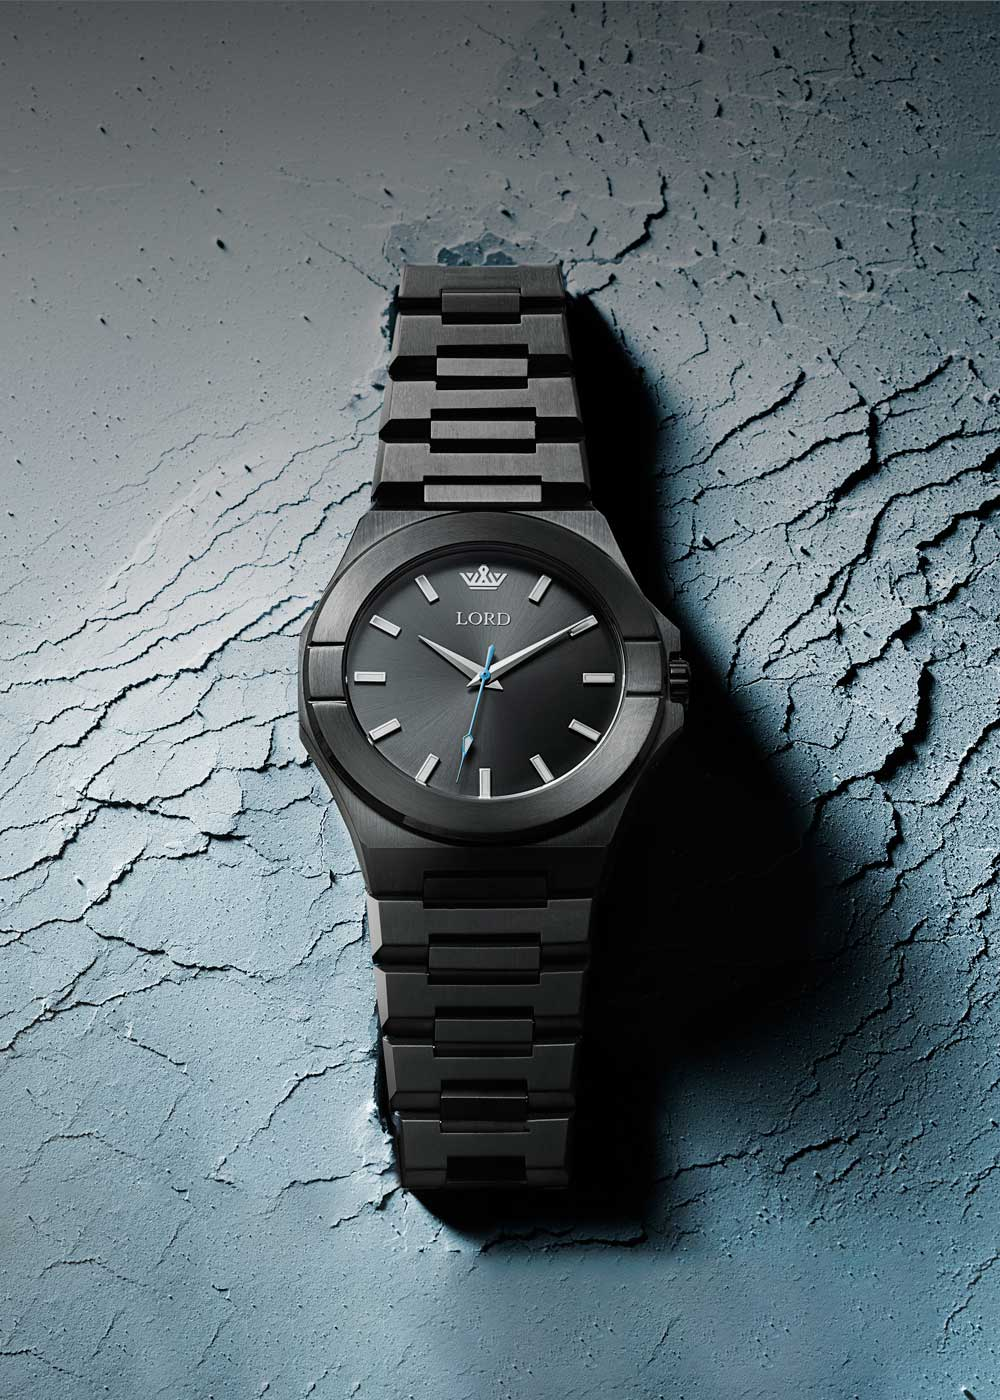 Affordable Luxury Watches | Men's Watches | Lord Timepieces